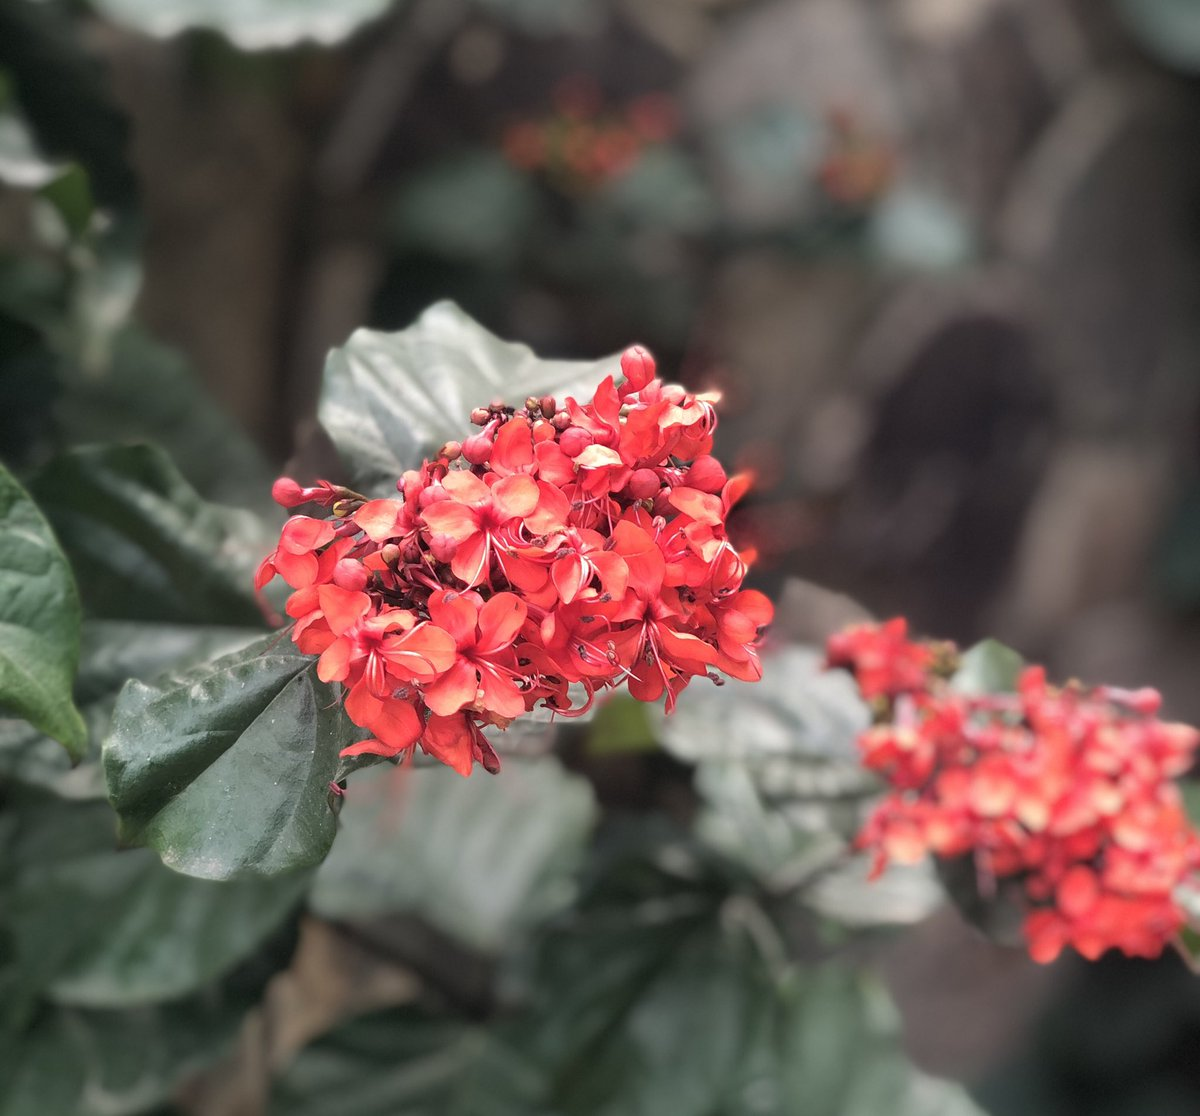 Morning meeting with Clerodendrum ! The climber with lush green foliage and bright red bunch of flowers never ceases to attract us. #nature #gardens